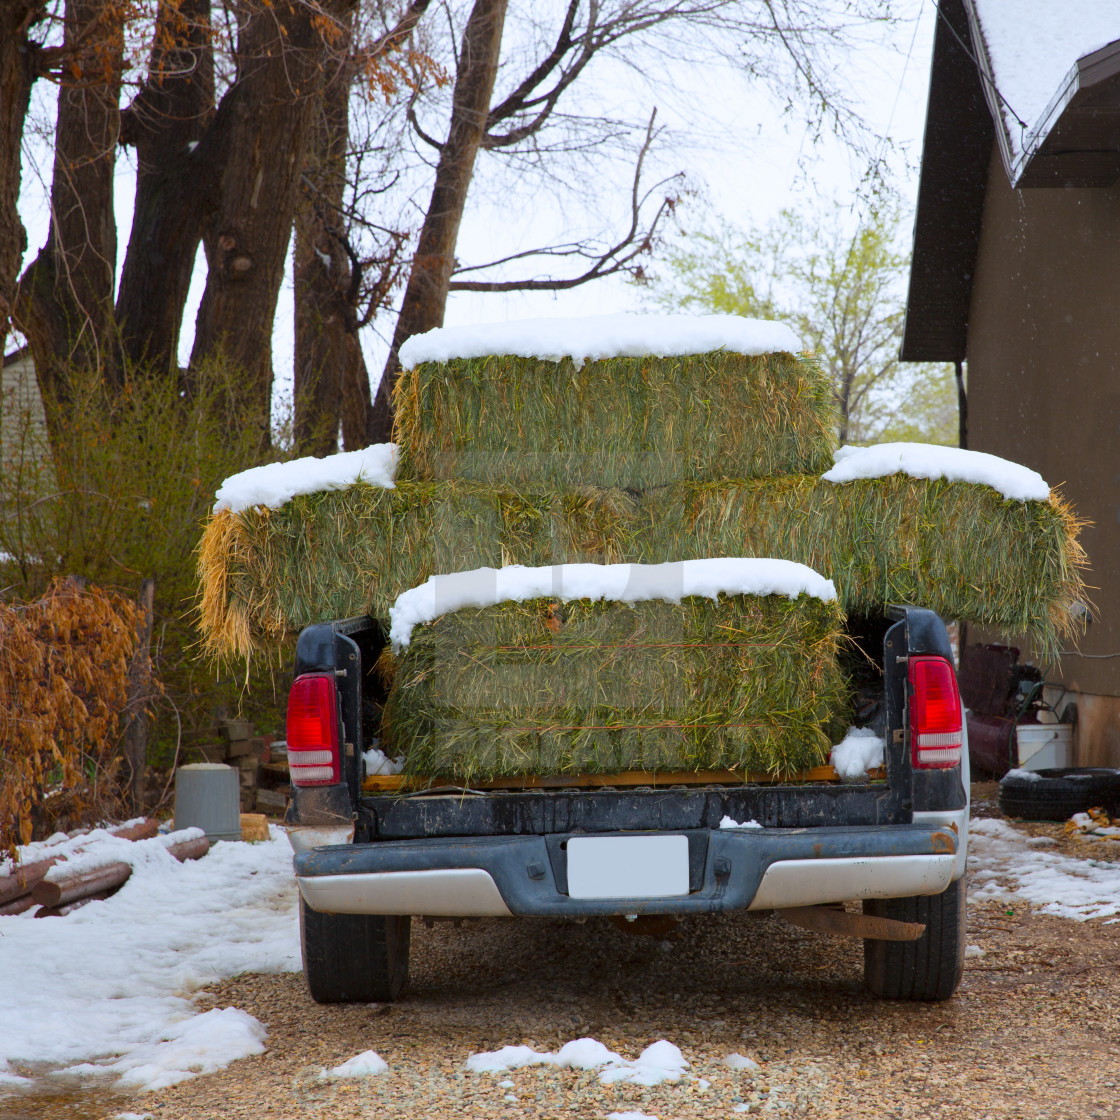 """Snow straw bales truck in Nevada USA"" stock image"